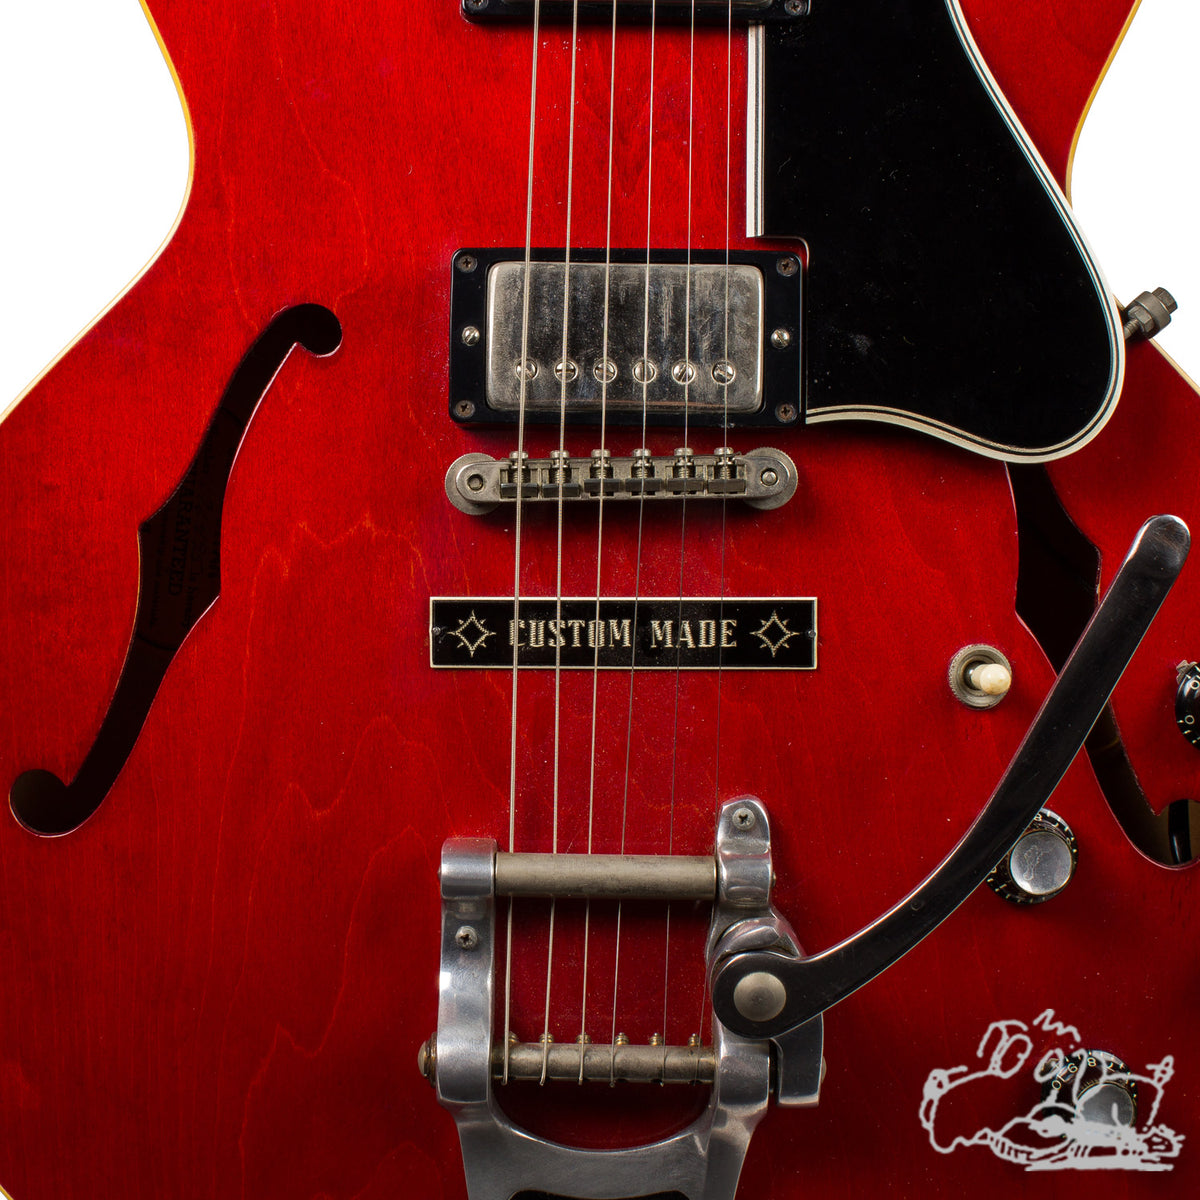 1964 Gibson ES-335 w/ Factory Bigsby and Custom Made Plaque